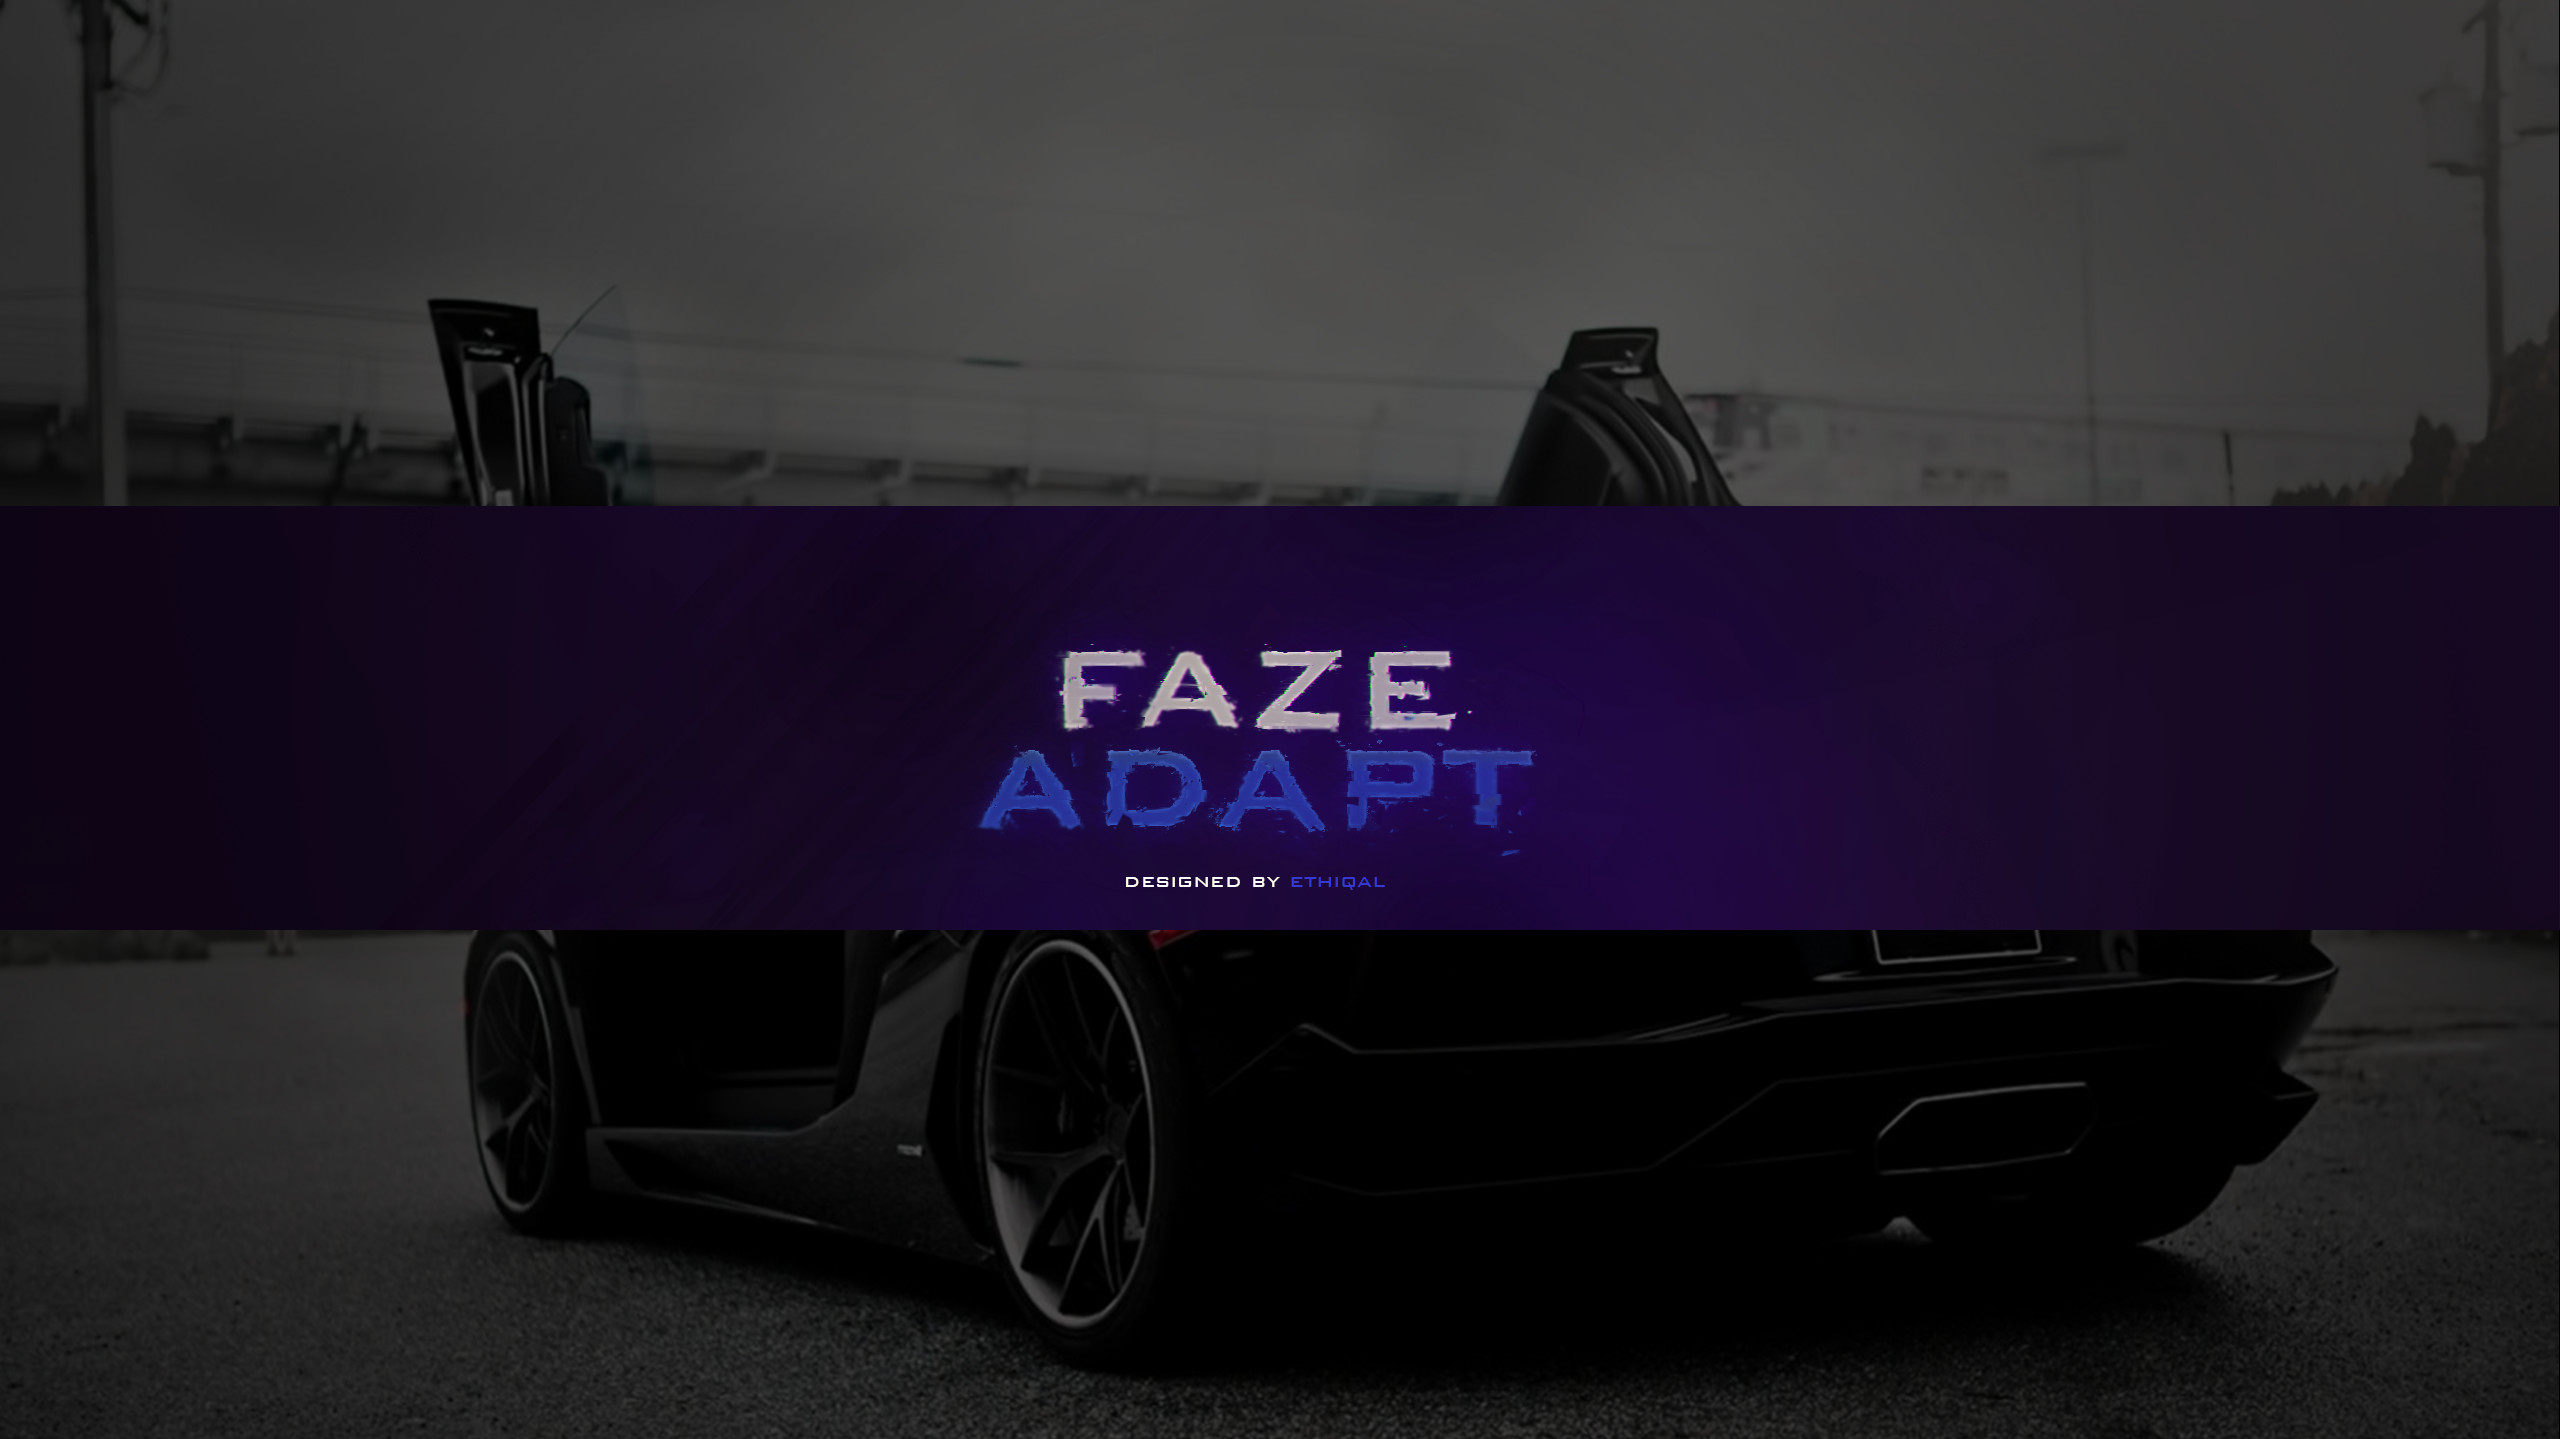 Res: 2560x1439, V-Pack: 44YHS, Faze Adapt Wallpaper, March 27, 2018